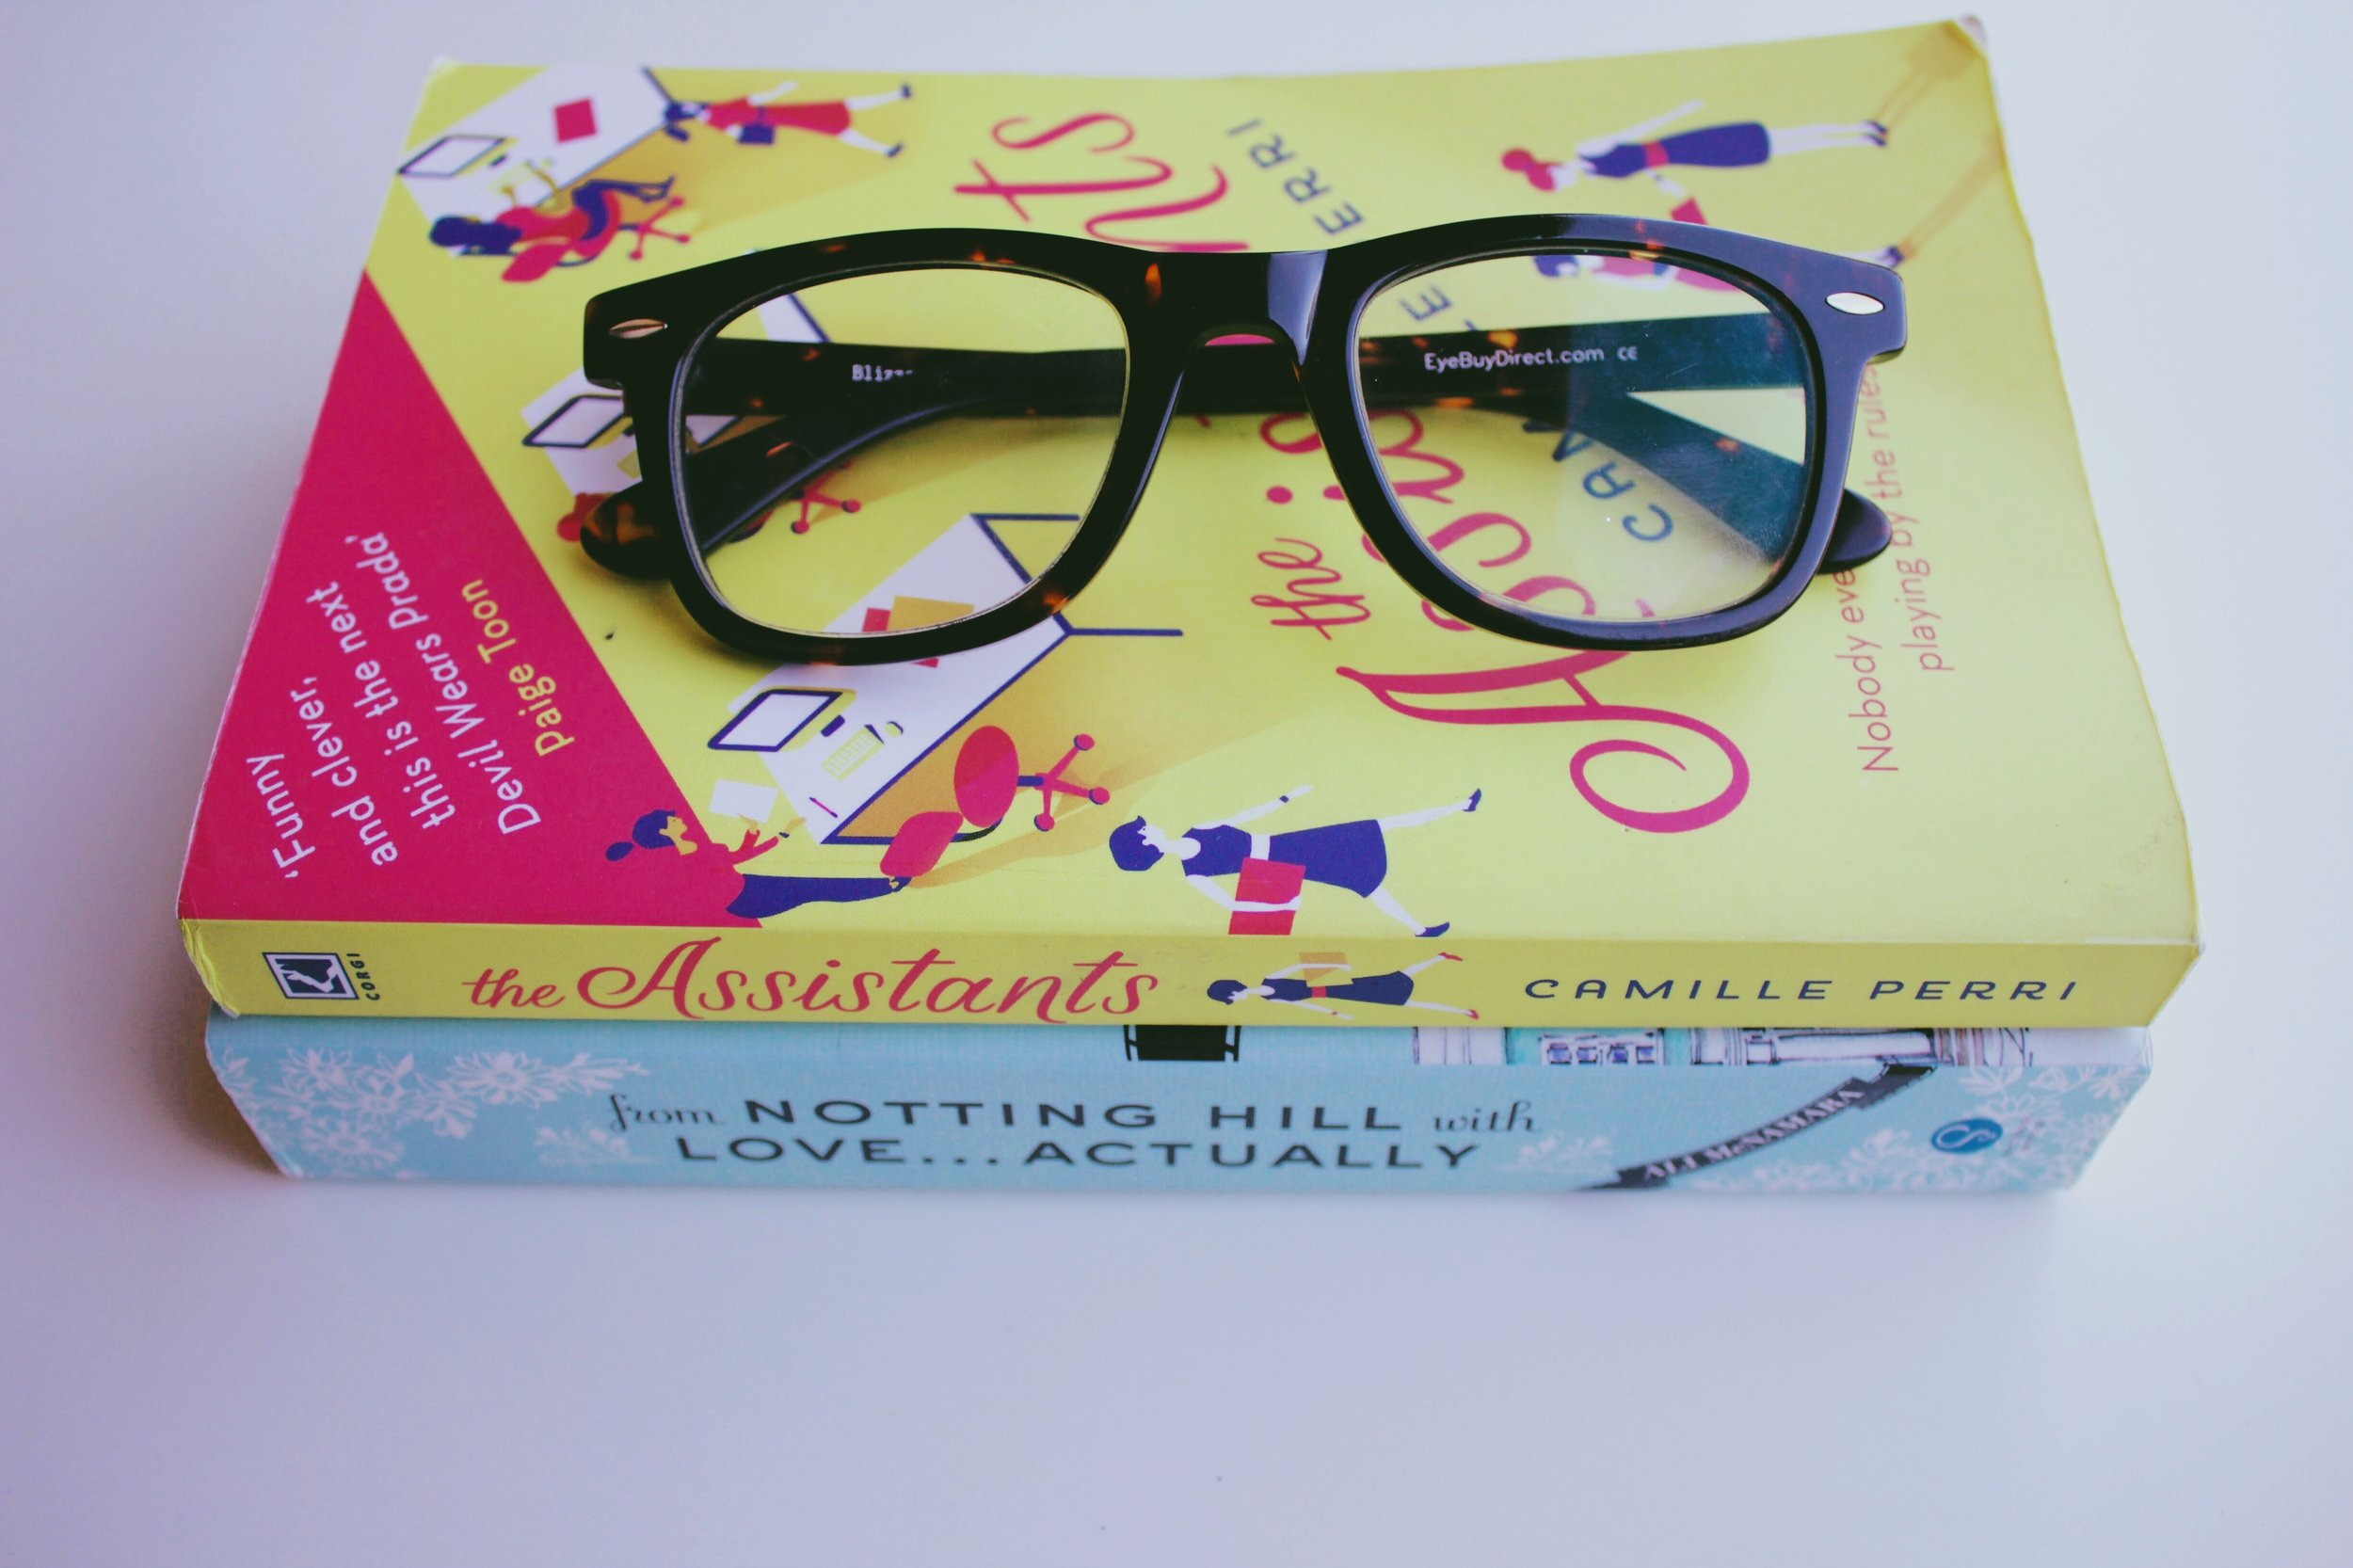 The Assistants, From Notting Hill with Love...Actually, reading, Eye Buy Direct glasses